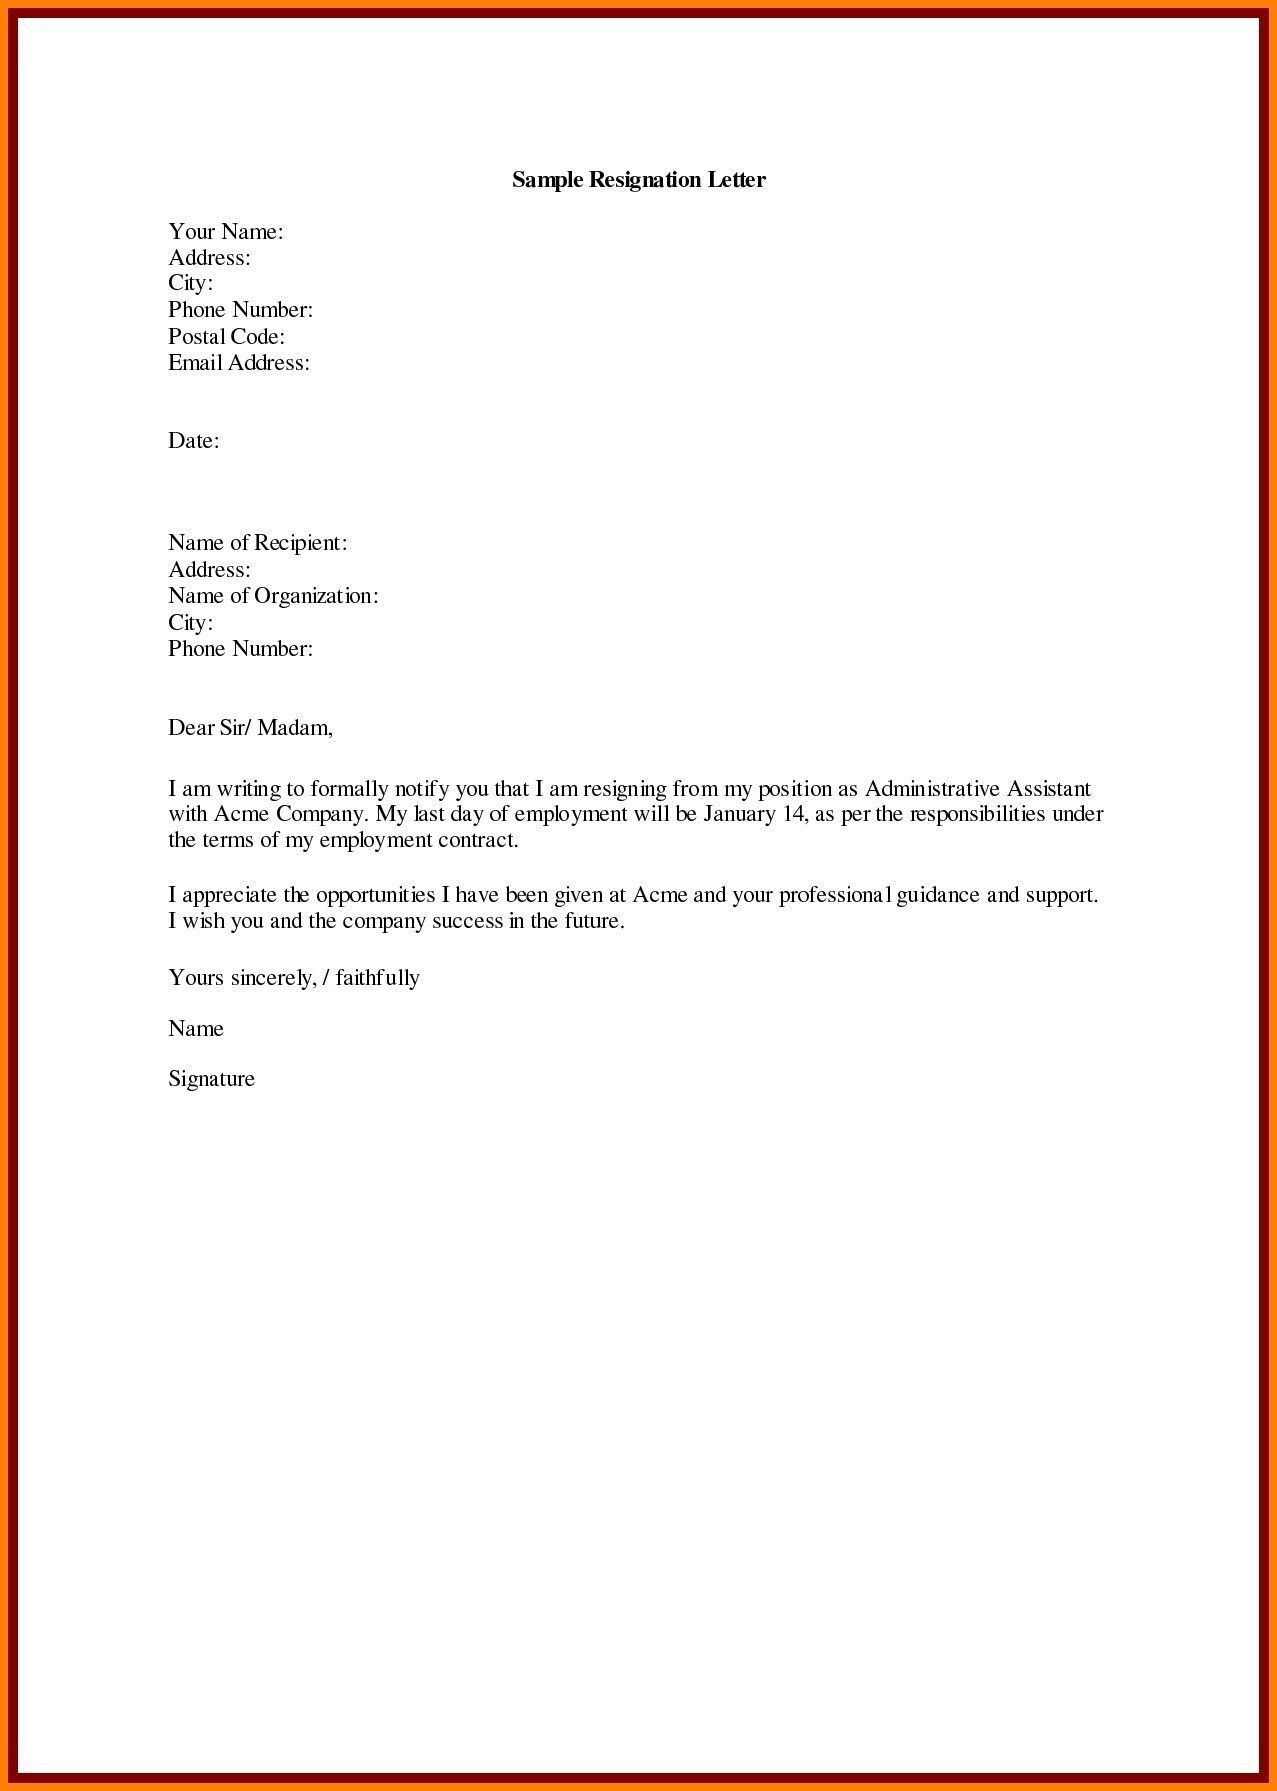 regine letter format in english new resignation letter